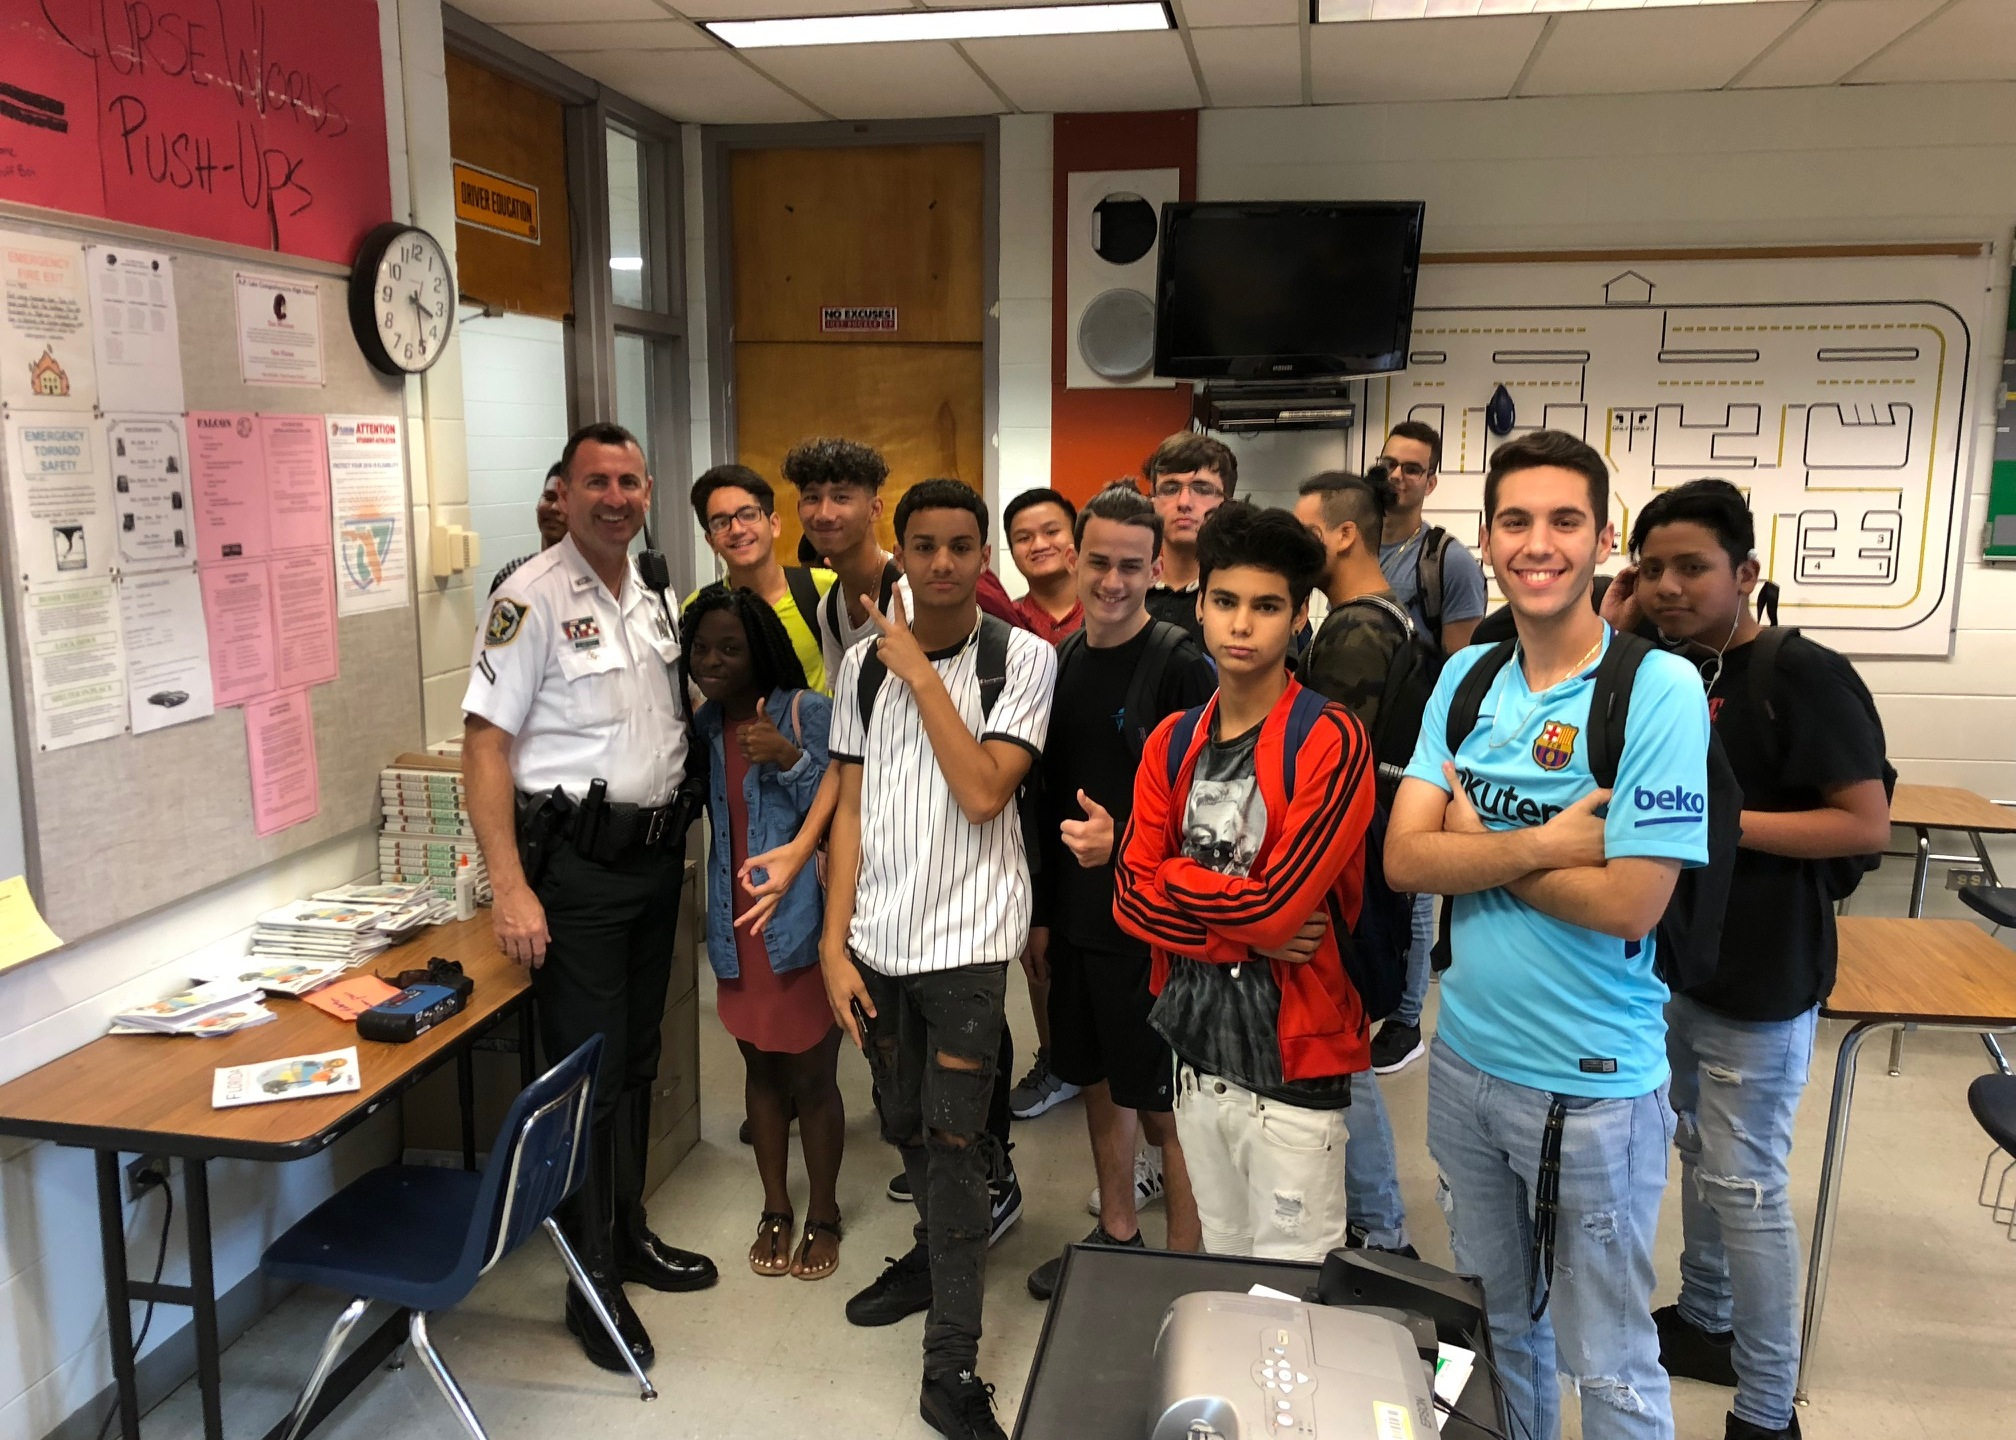 HCSO deputies teach drivers ed